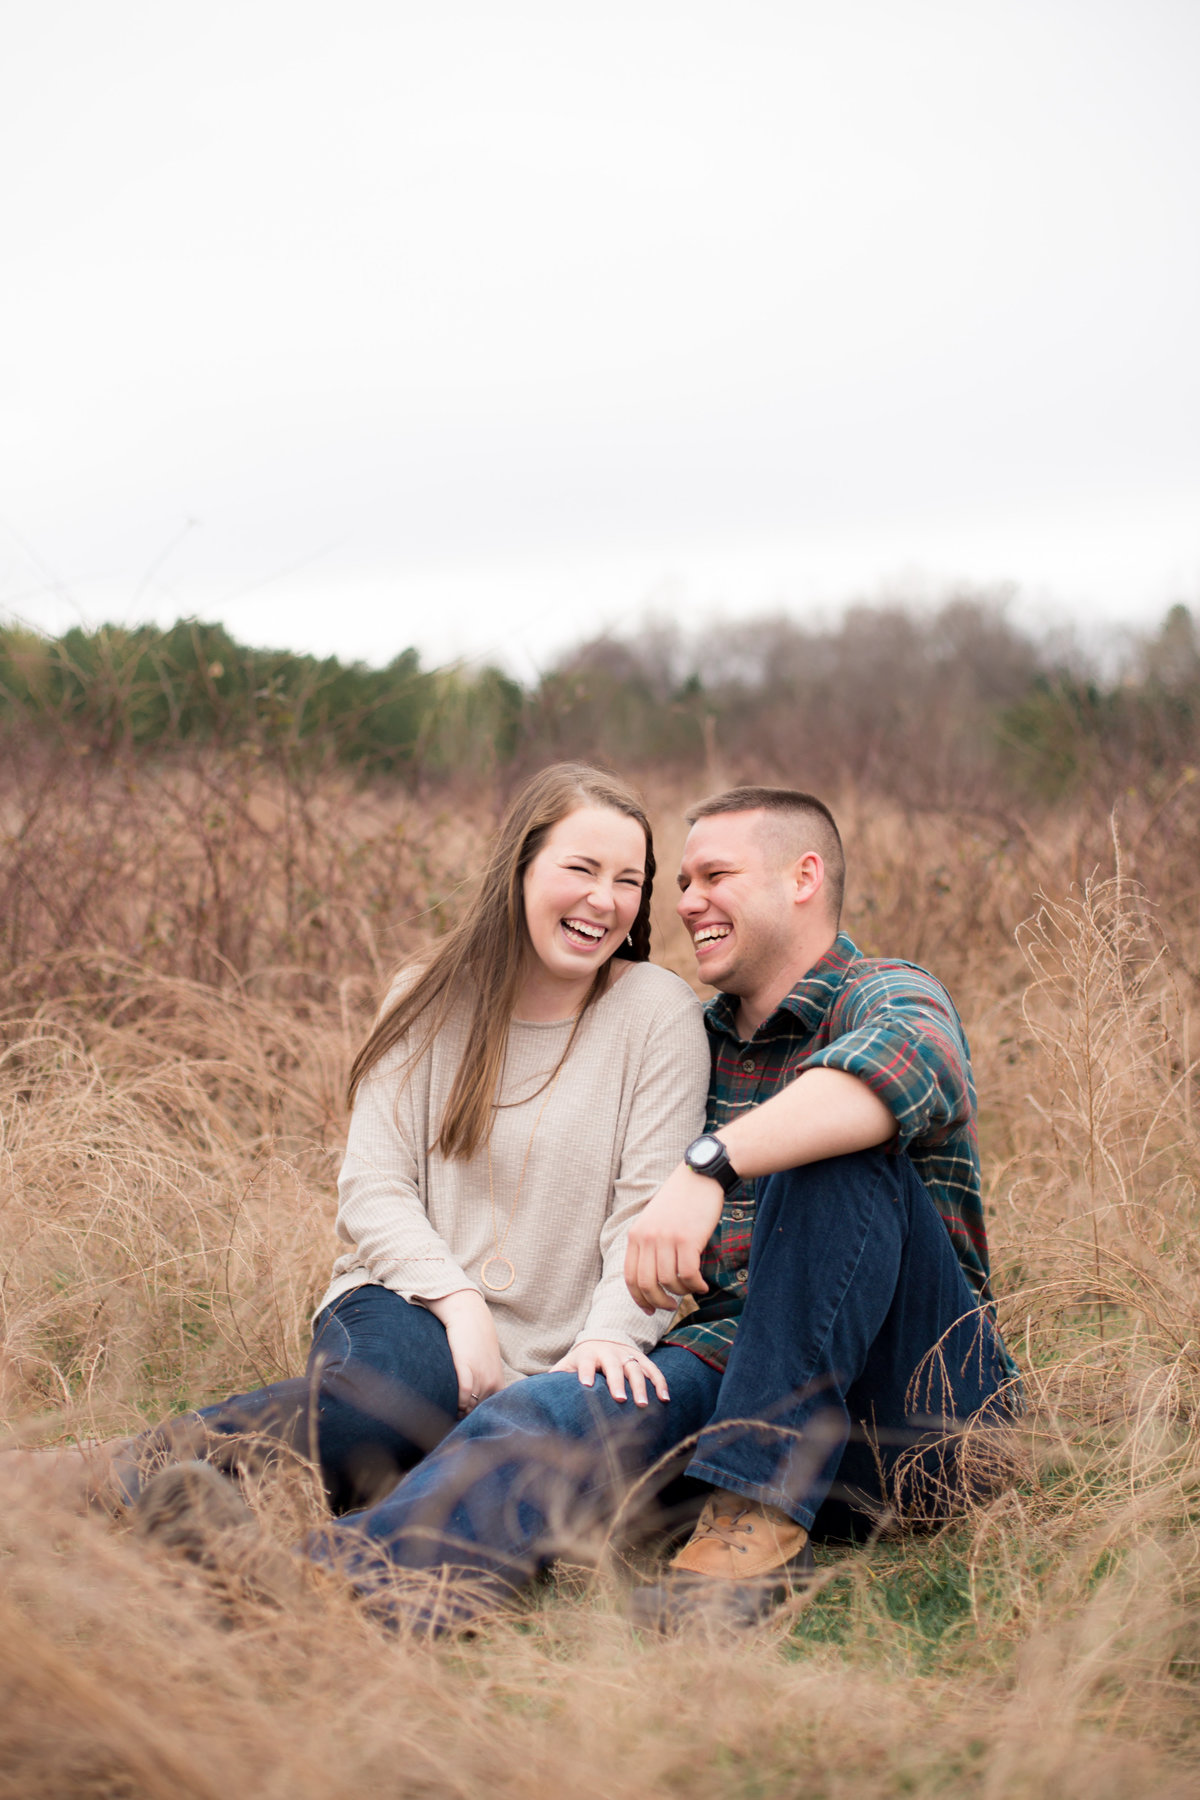 engaged couple laughing in outdoor wedding photographer shoot